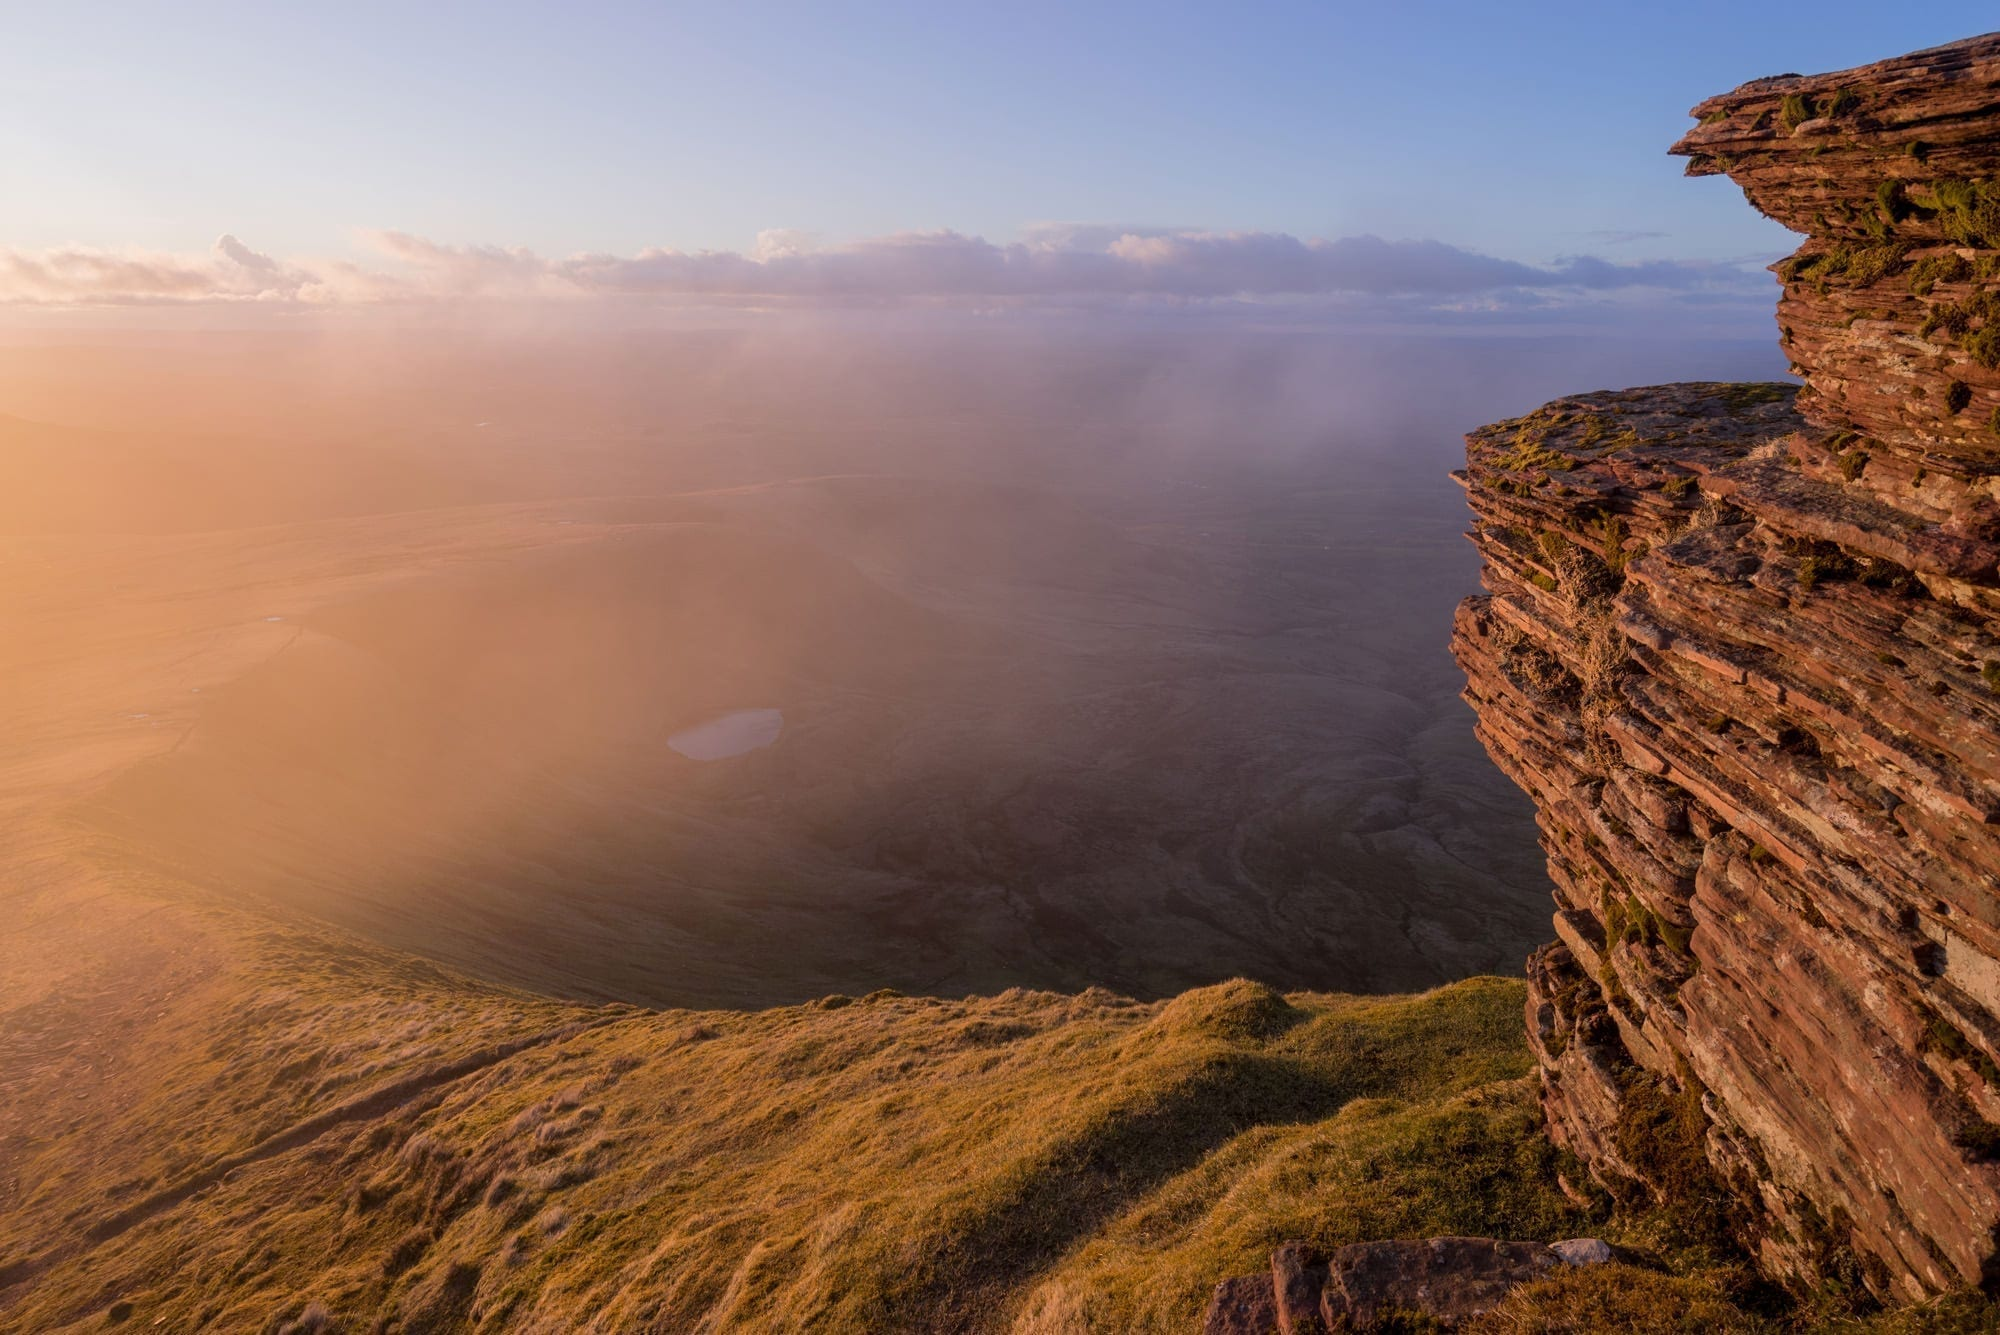 Corn Ddu Sunset - Pen-Y-Fan - Brecon Beacons Photography